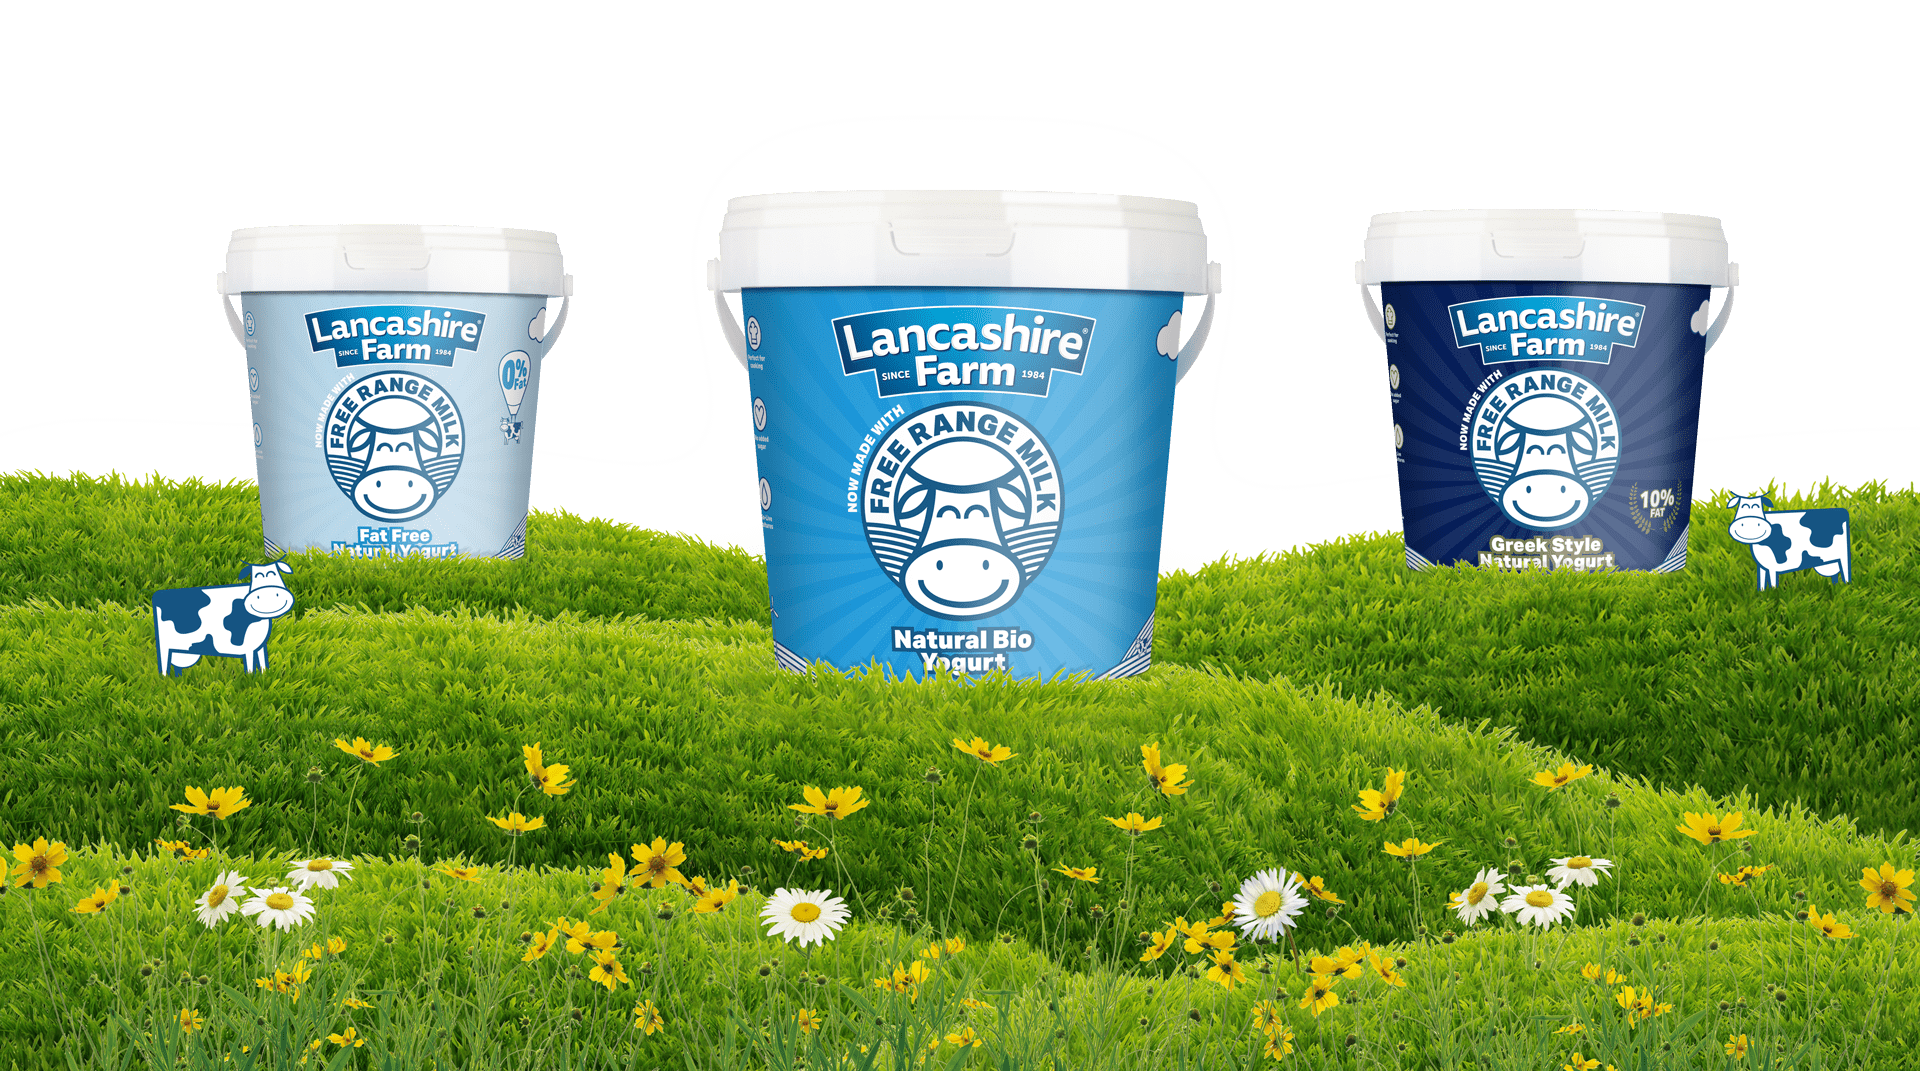 Here we have the Lancashire Farm Natural Bio, Fat Free and Greek style kilo yogurt pots sitting on top of the rolling hills of Lancashire.